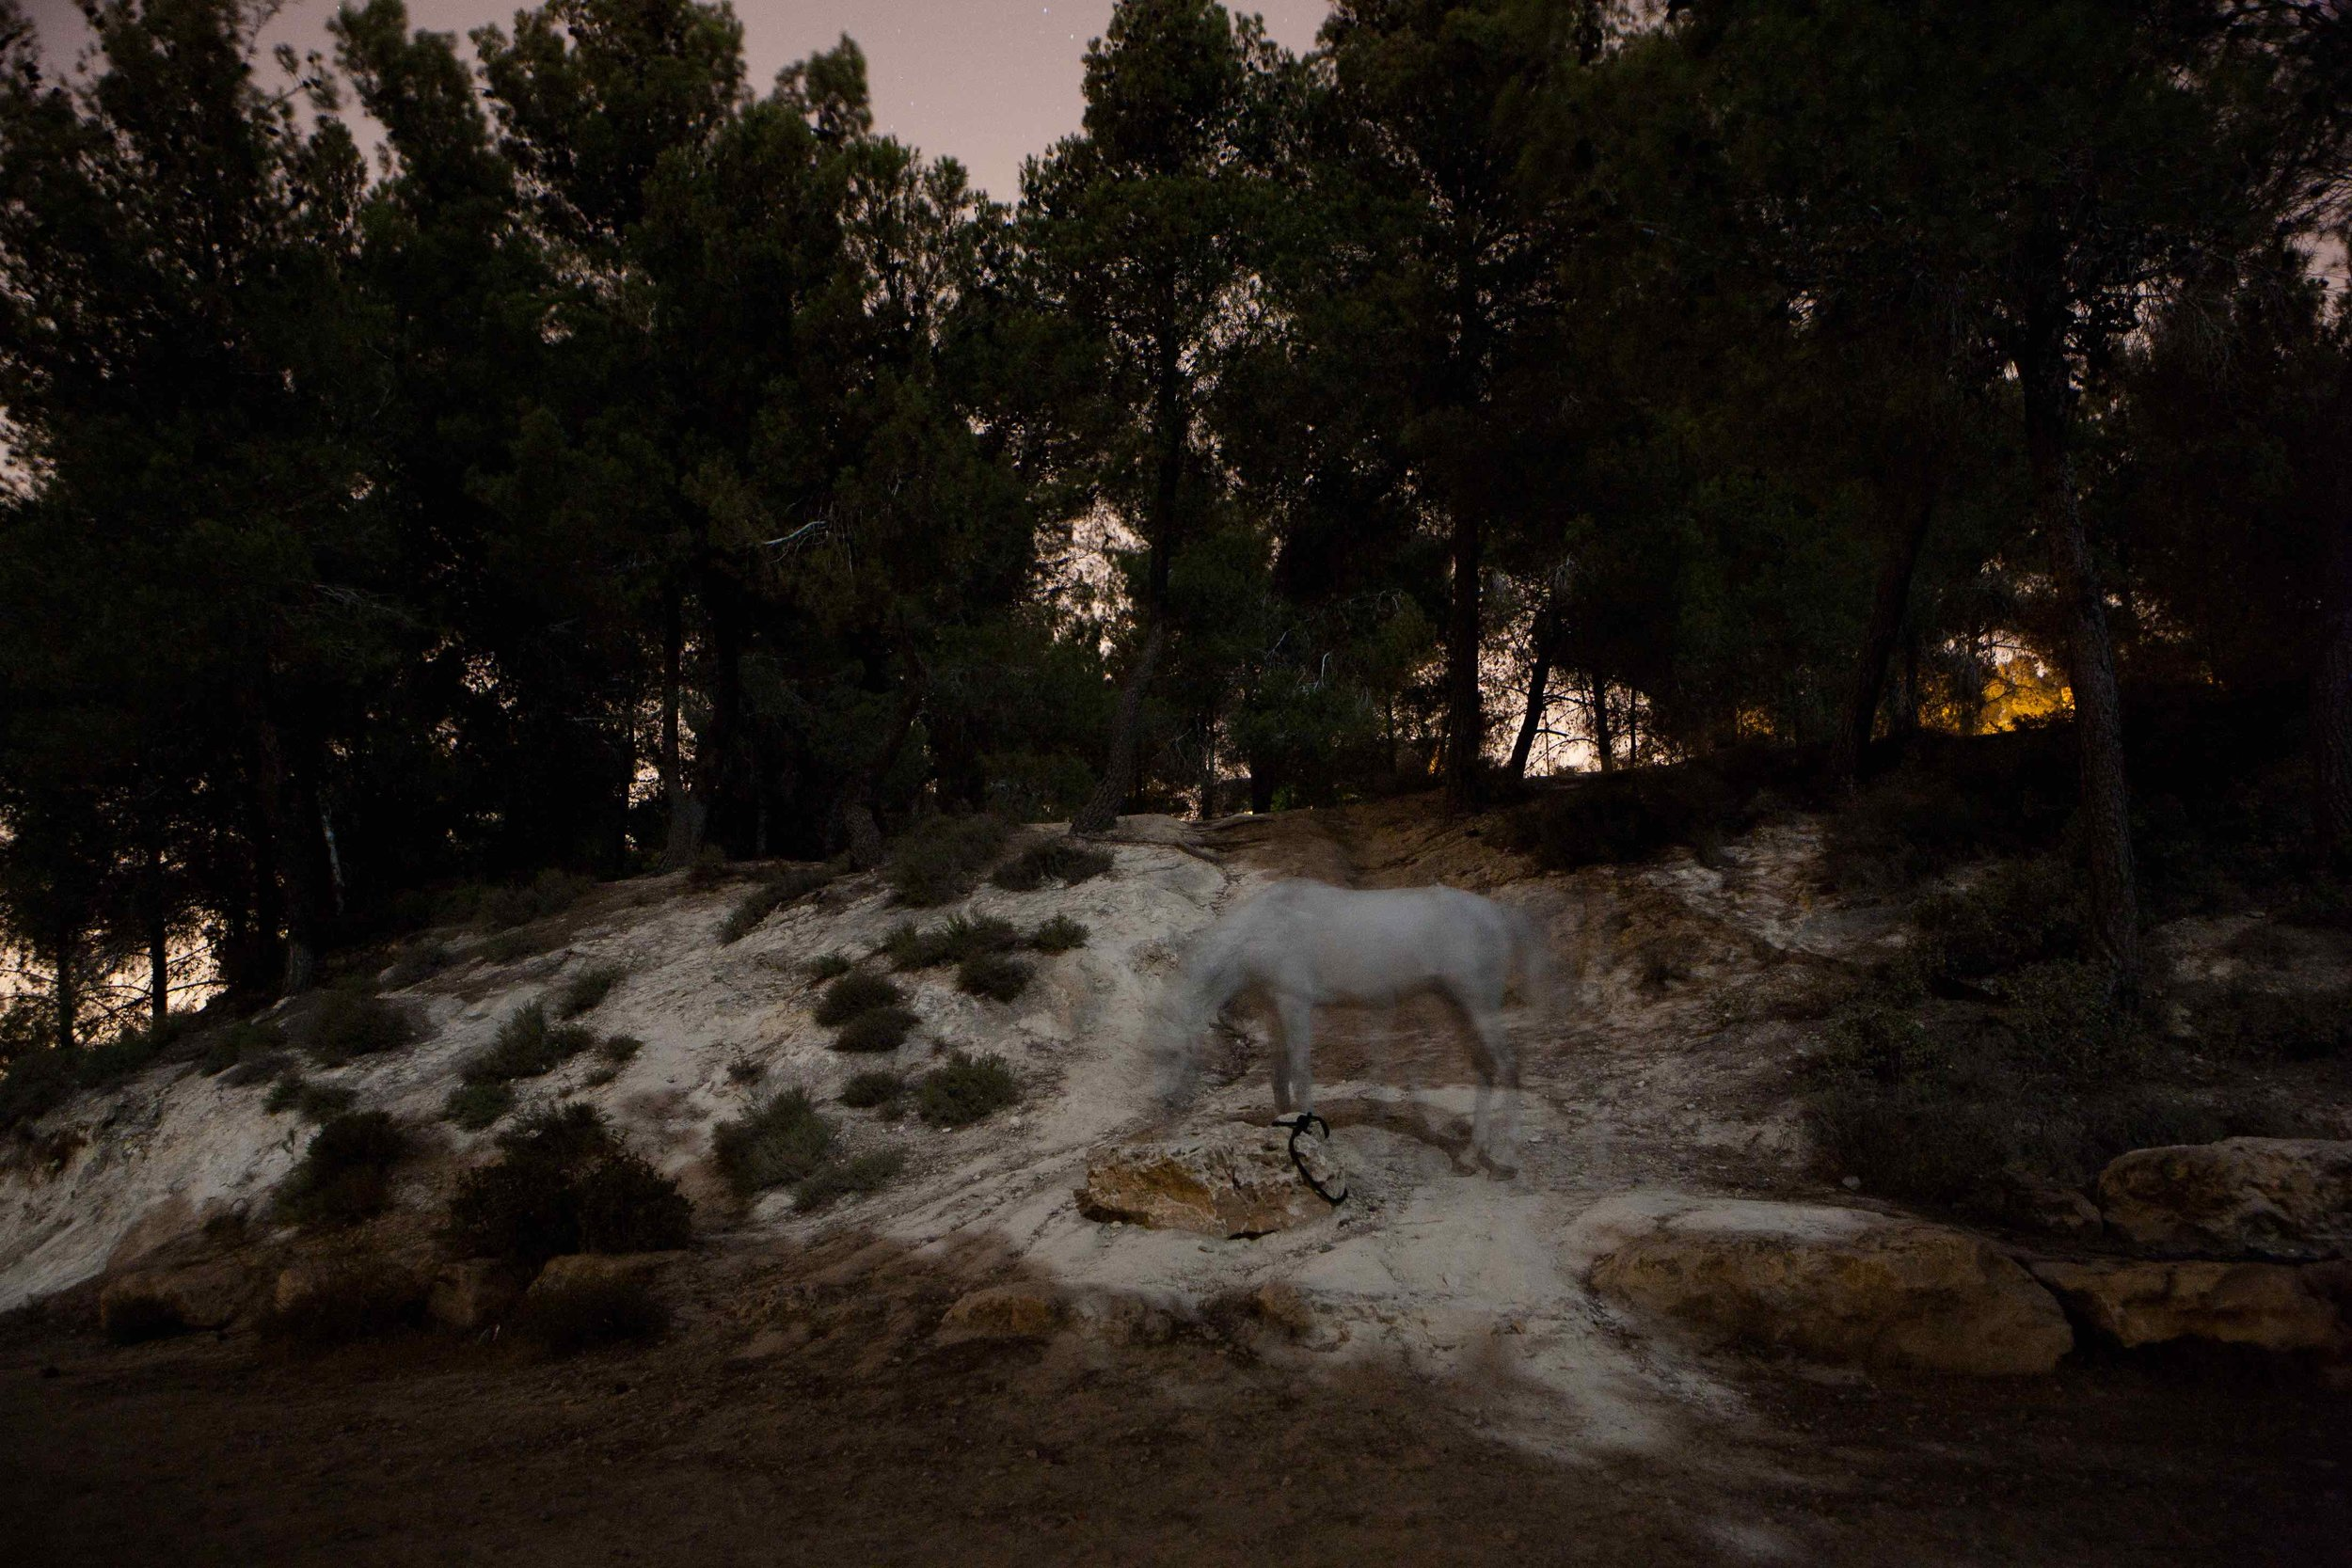 White Horse in the Forest / Jerusalem, Israel 2011